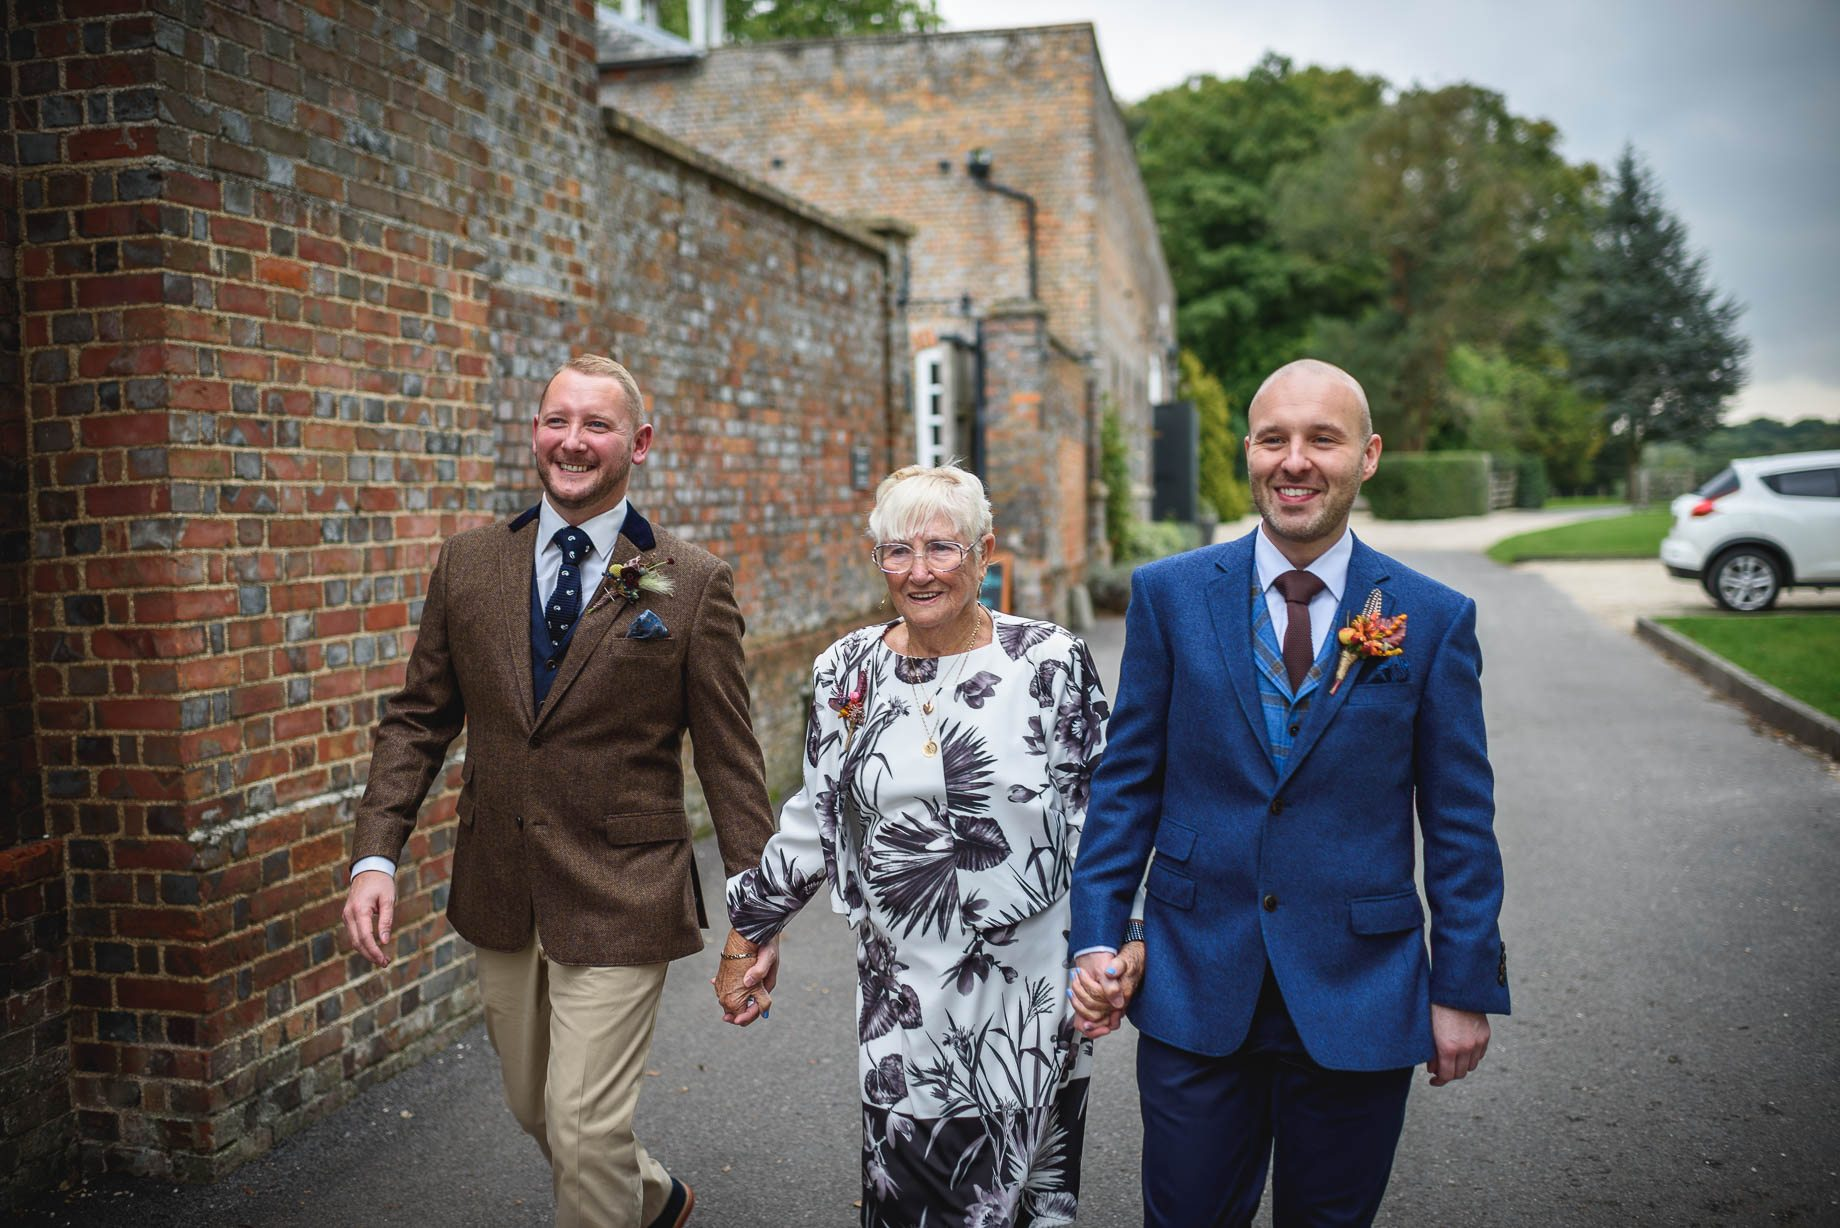 gay-wedding-photography-at-wasing-park-guy-collier-photography-ben-and-stephen-31-of-202